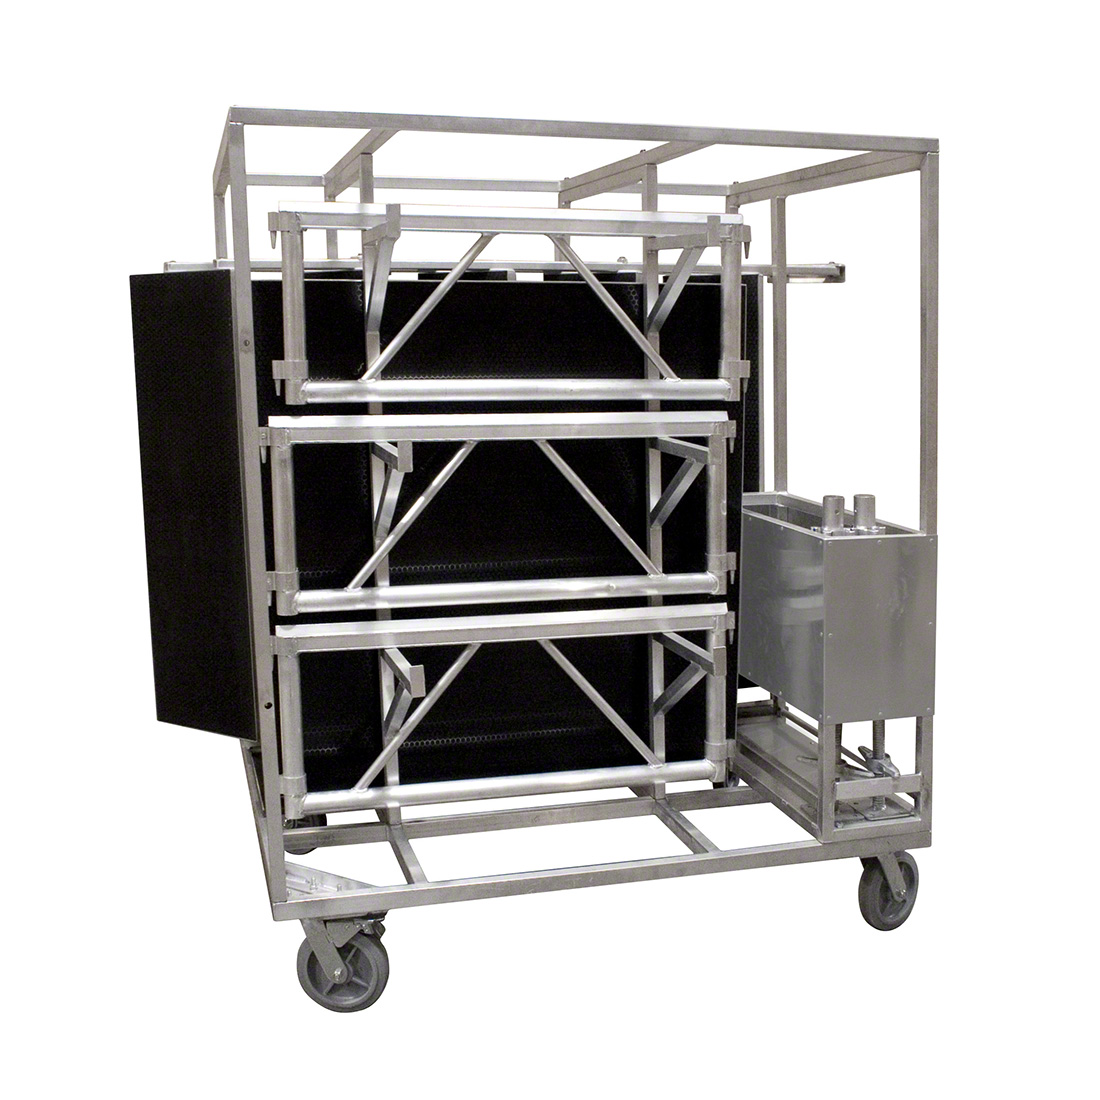 All-Terrain Storage & Transport